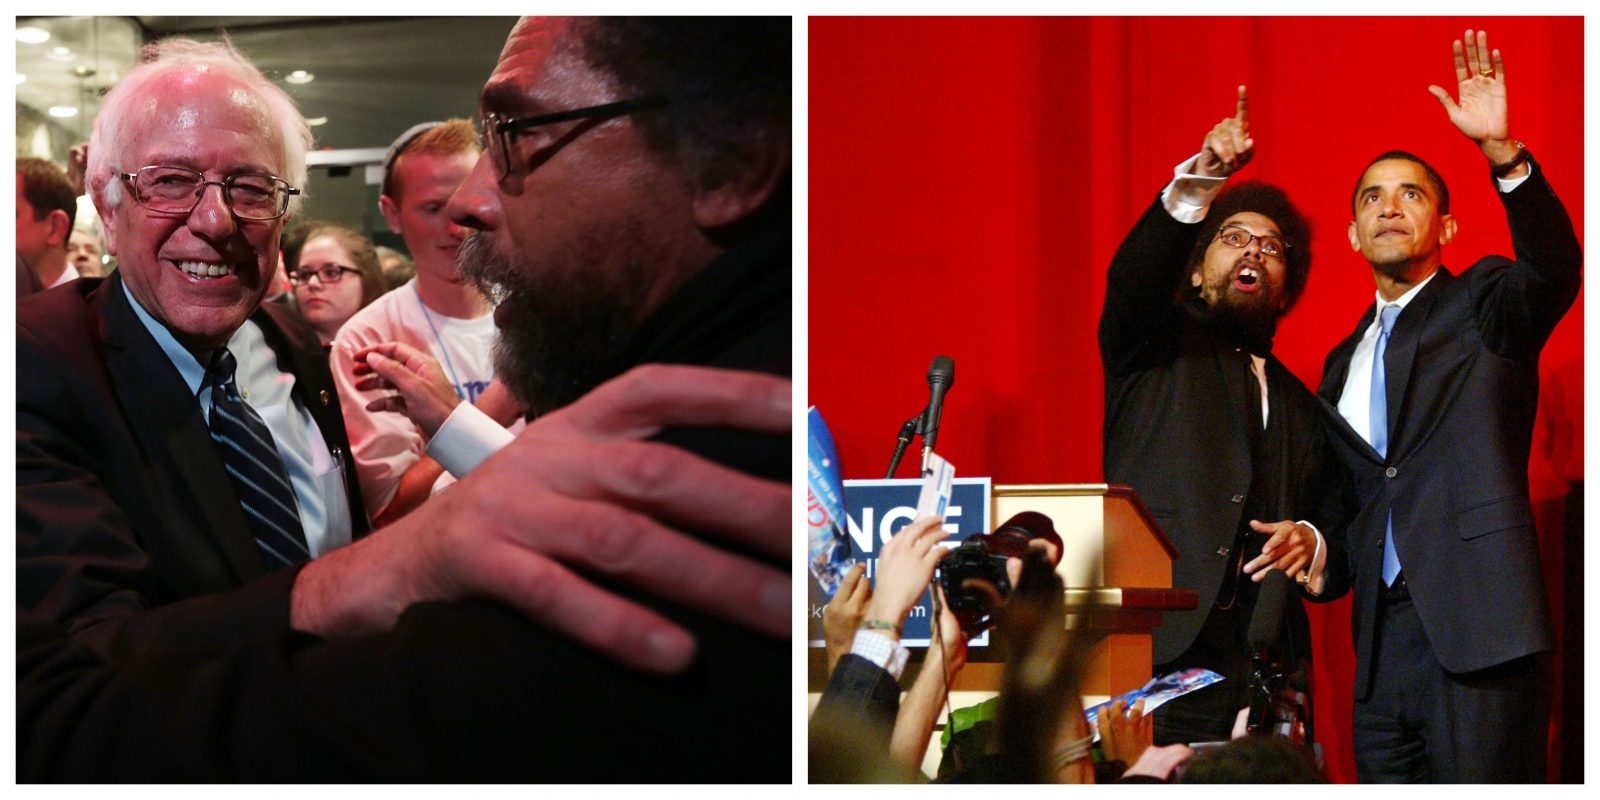 (Left) West with his presidential pick Bernie Sanders in Des Moines, Iowa, in 2015 during the senator's first bid for the White House; (right) with then-presidential candidate Barack Obama at Harlem's Apollo Theater in 2007 (Sanders by Alex Wong/Getty Images. Obama by HRC/Wenn/Newscom).